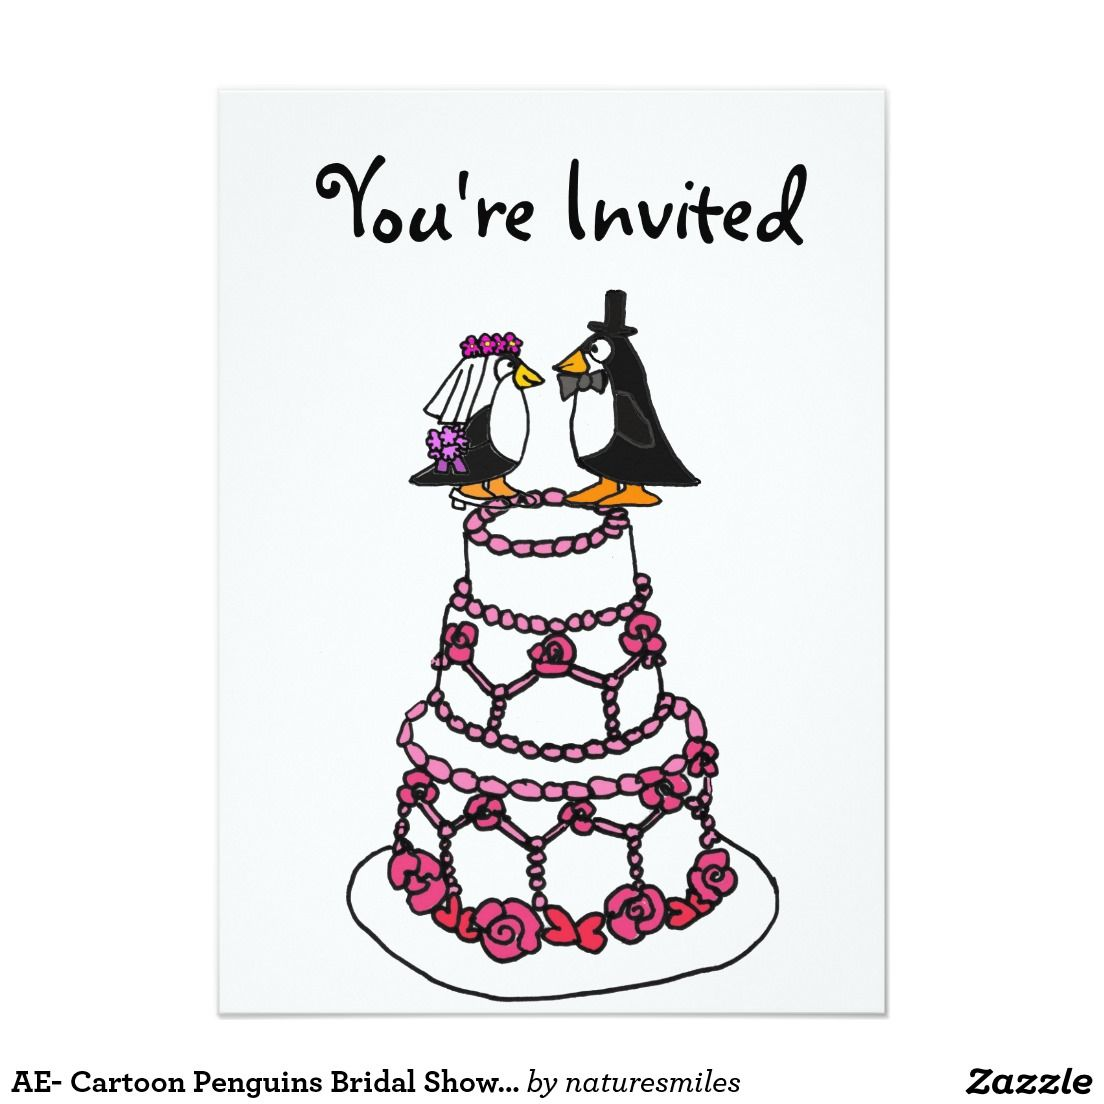 ae cartoon penguins bridal shower invitations